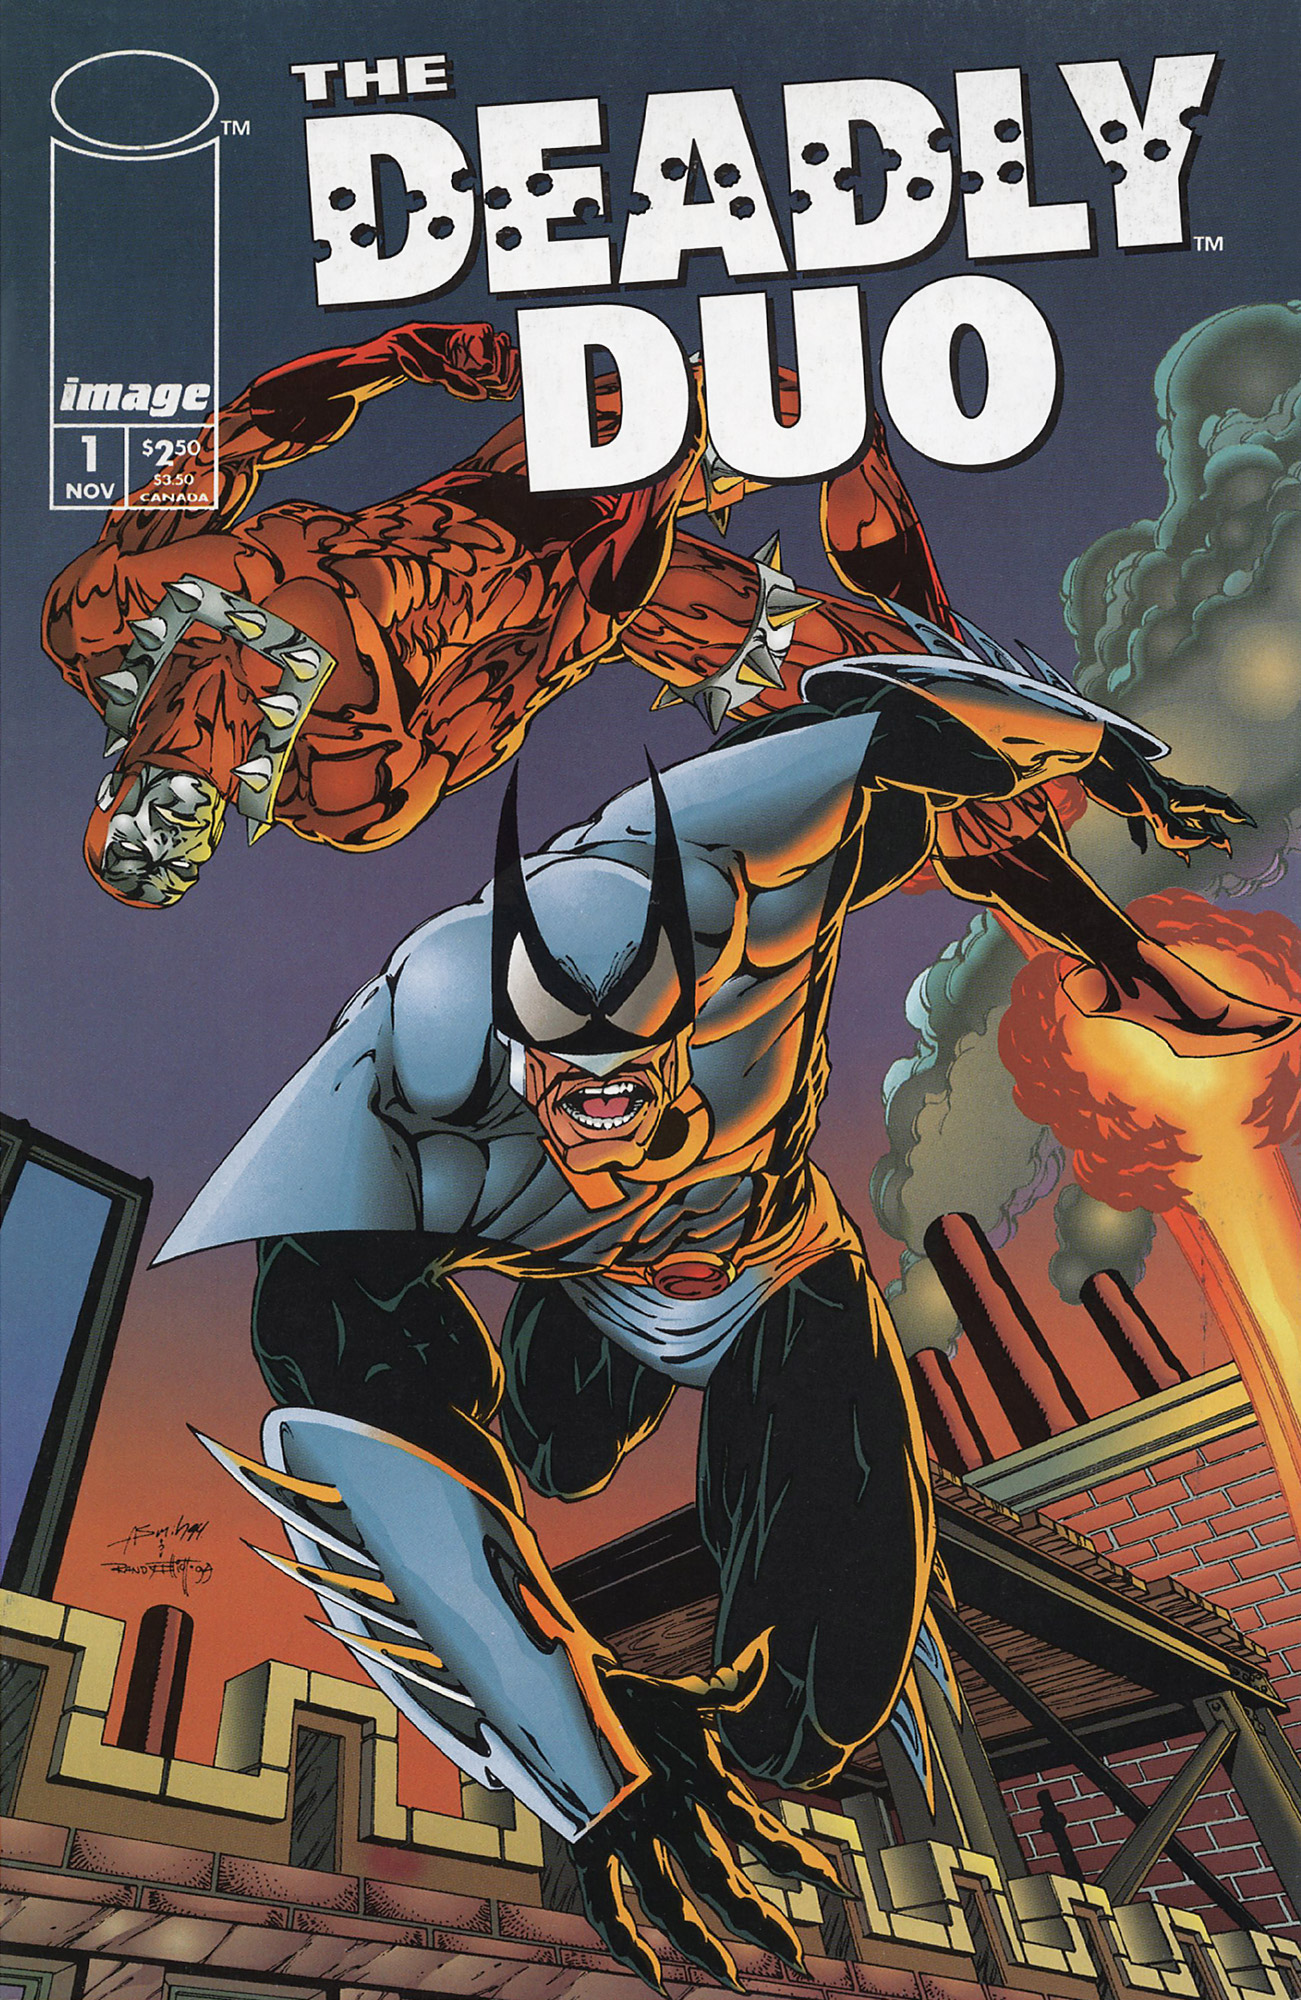 Cover The Deadly Duo1 Vol.1 #1